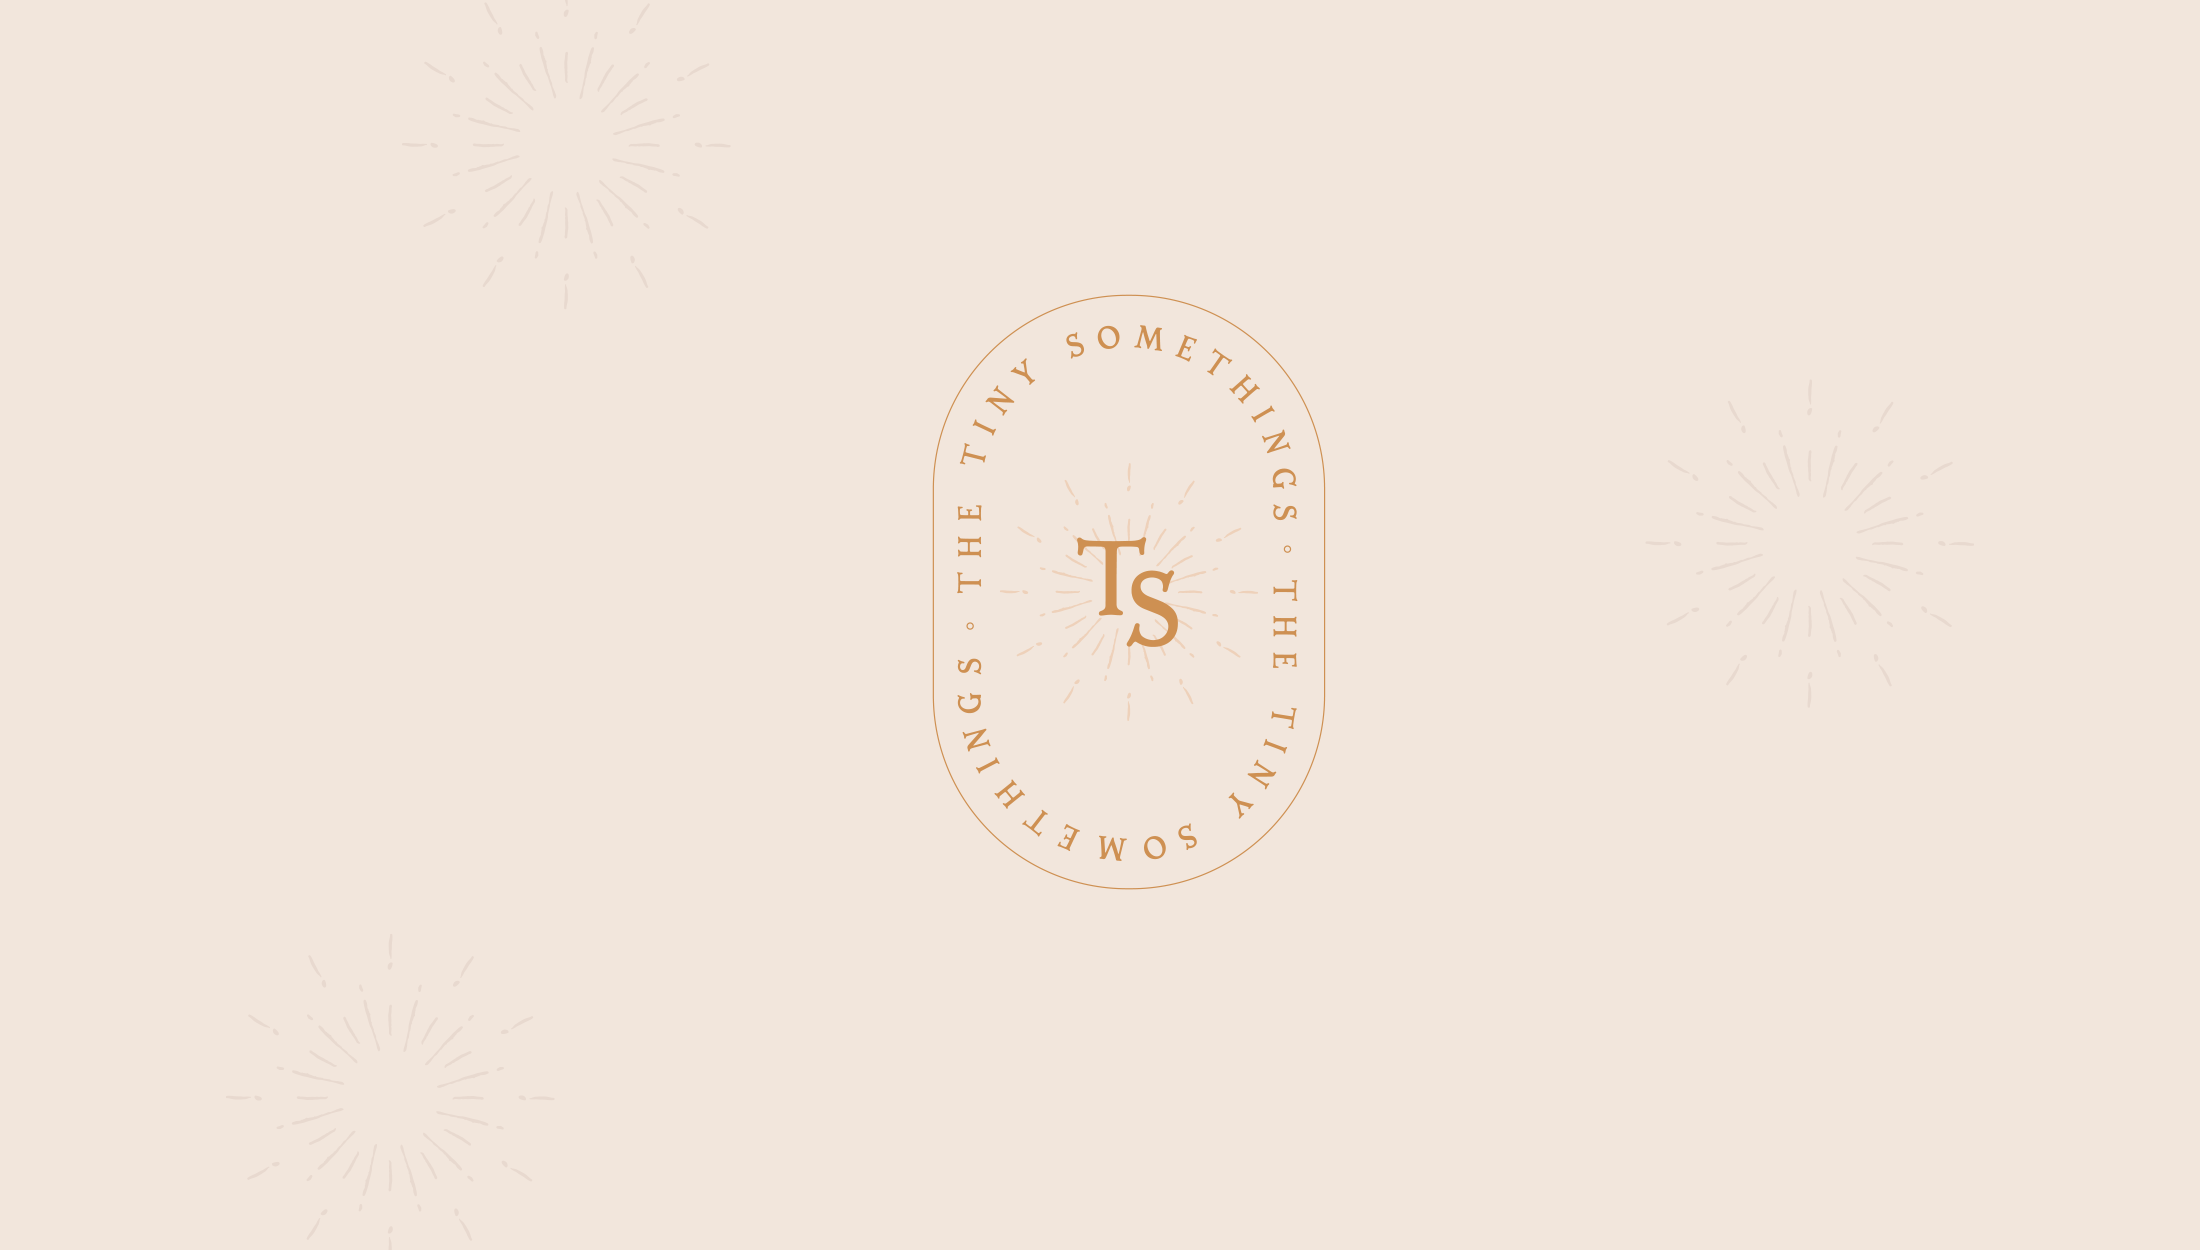 Logomark for The Tiny Somethings, a lifestyle blog that shares little snippets of advice and experiences on different areas of life including personal growth, self-love, spirituality, health & wellness, and more - designed by Wiltshire-based graphic designer, Kaye Huett